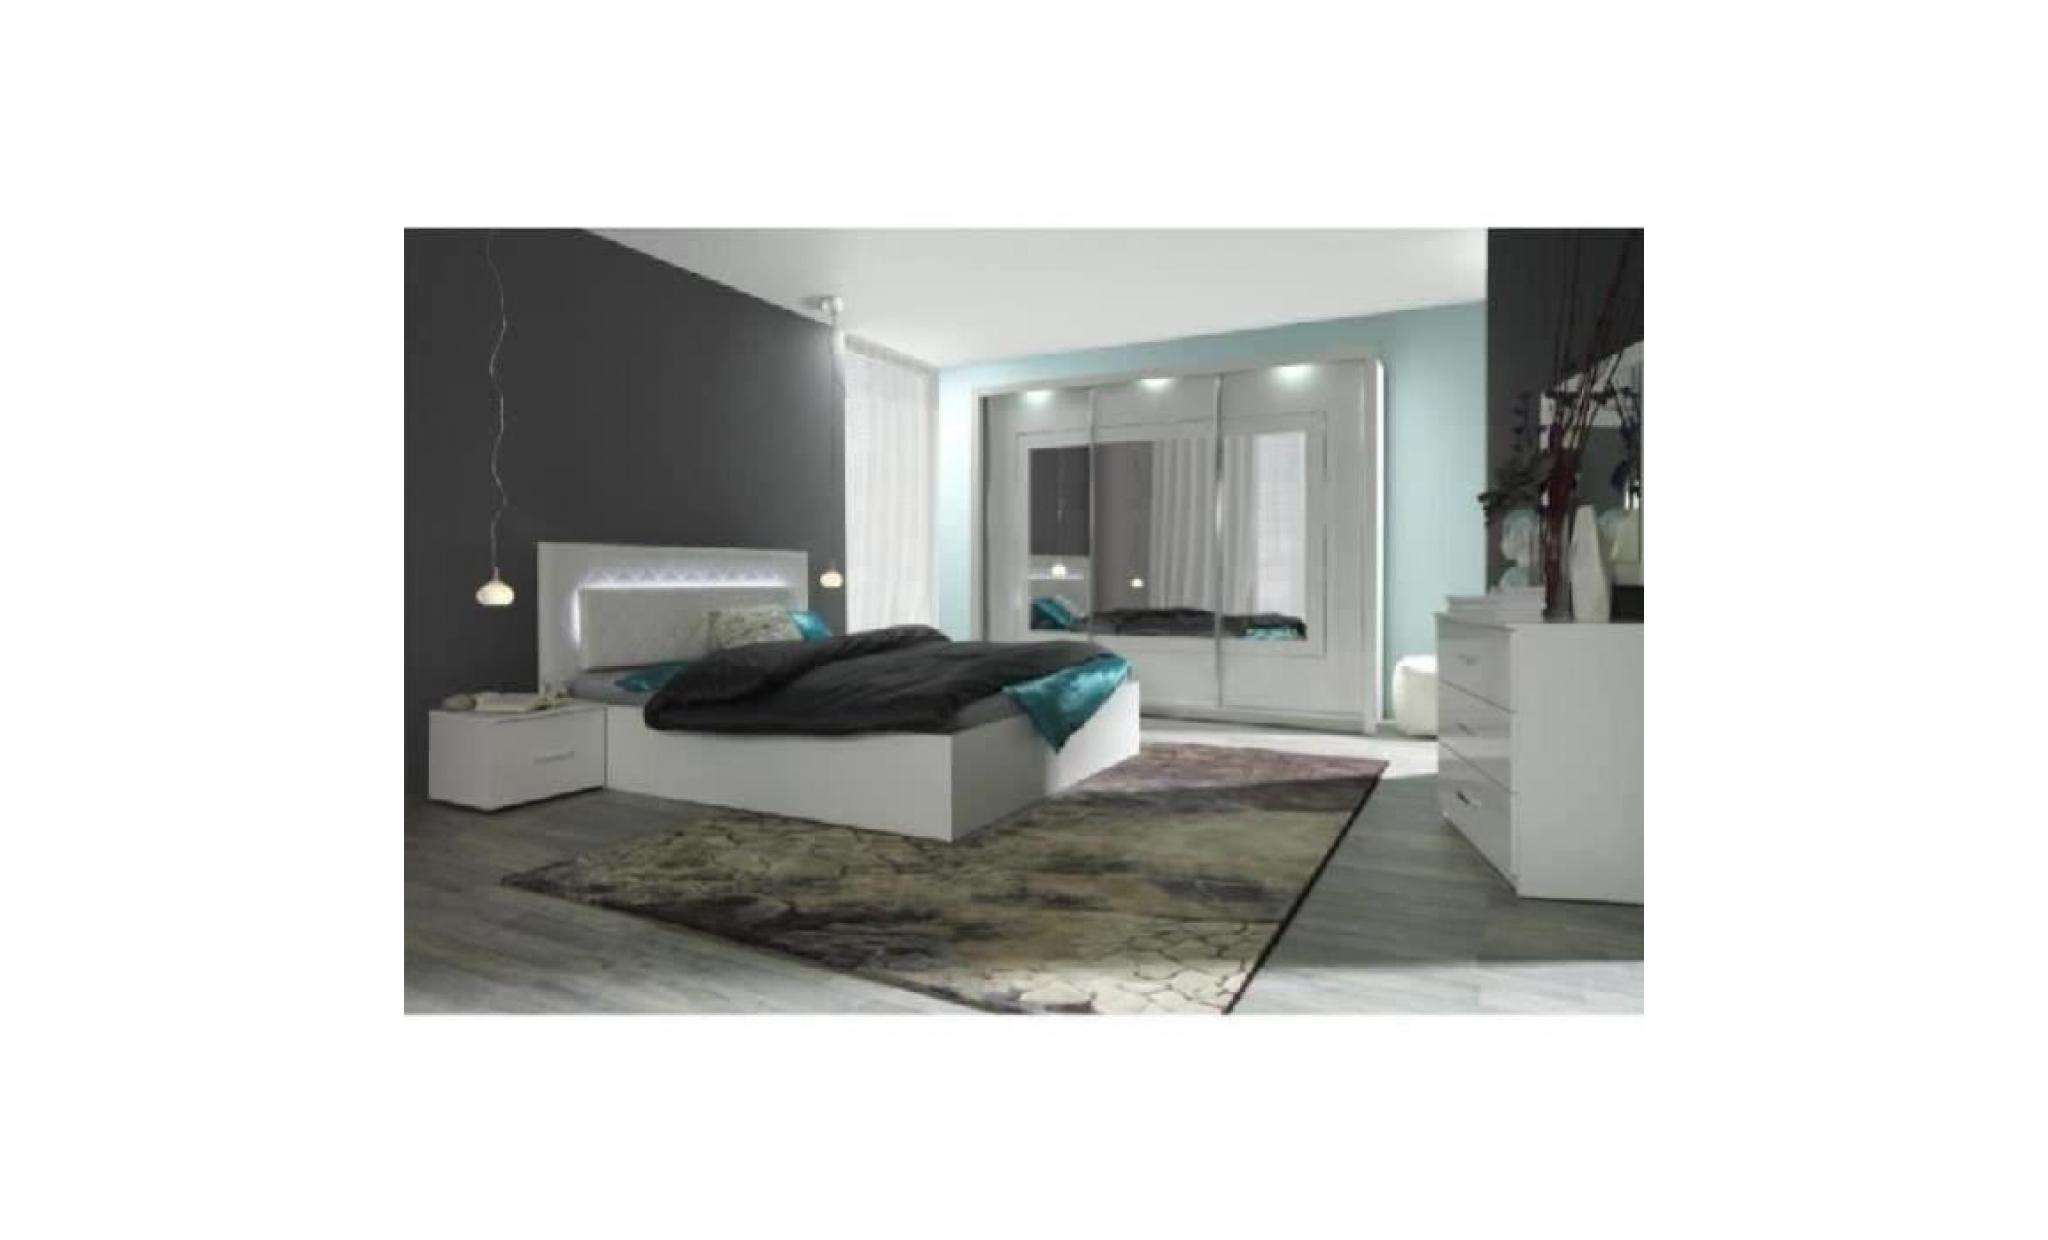 chambre coucher compl te panarea led laqu e achat vente chambre complete pas cher. Black Bedroom Furniture Sets. Home Design Ideas